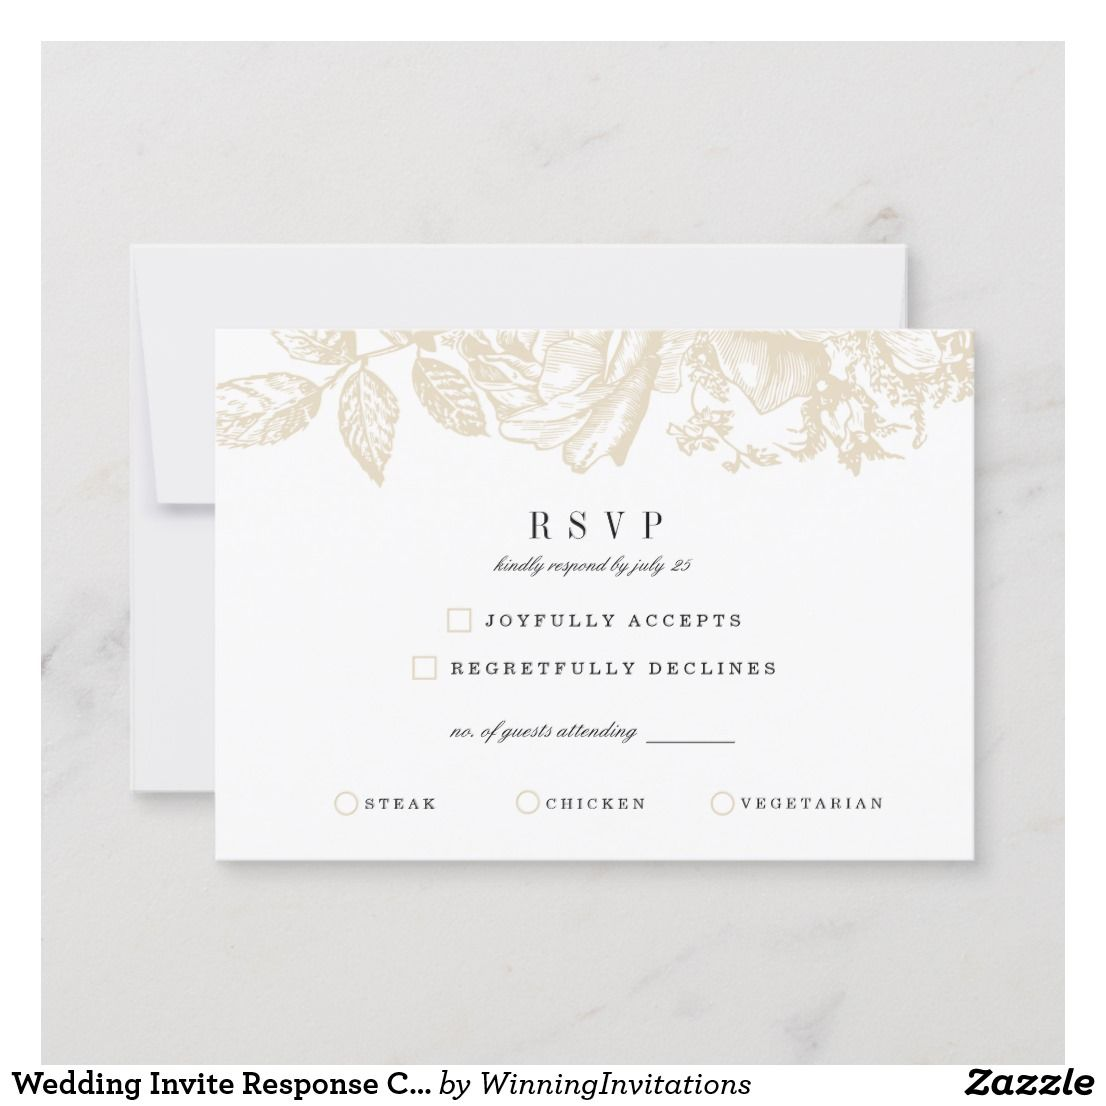 Wedding Invite Response Card Leicester Blooms Wedding Graphic Design Modern Invitation Invitations